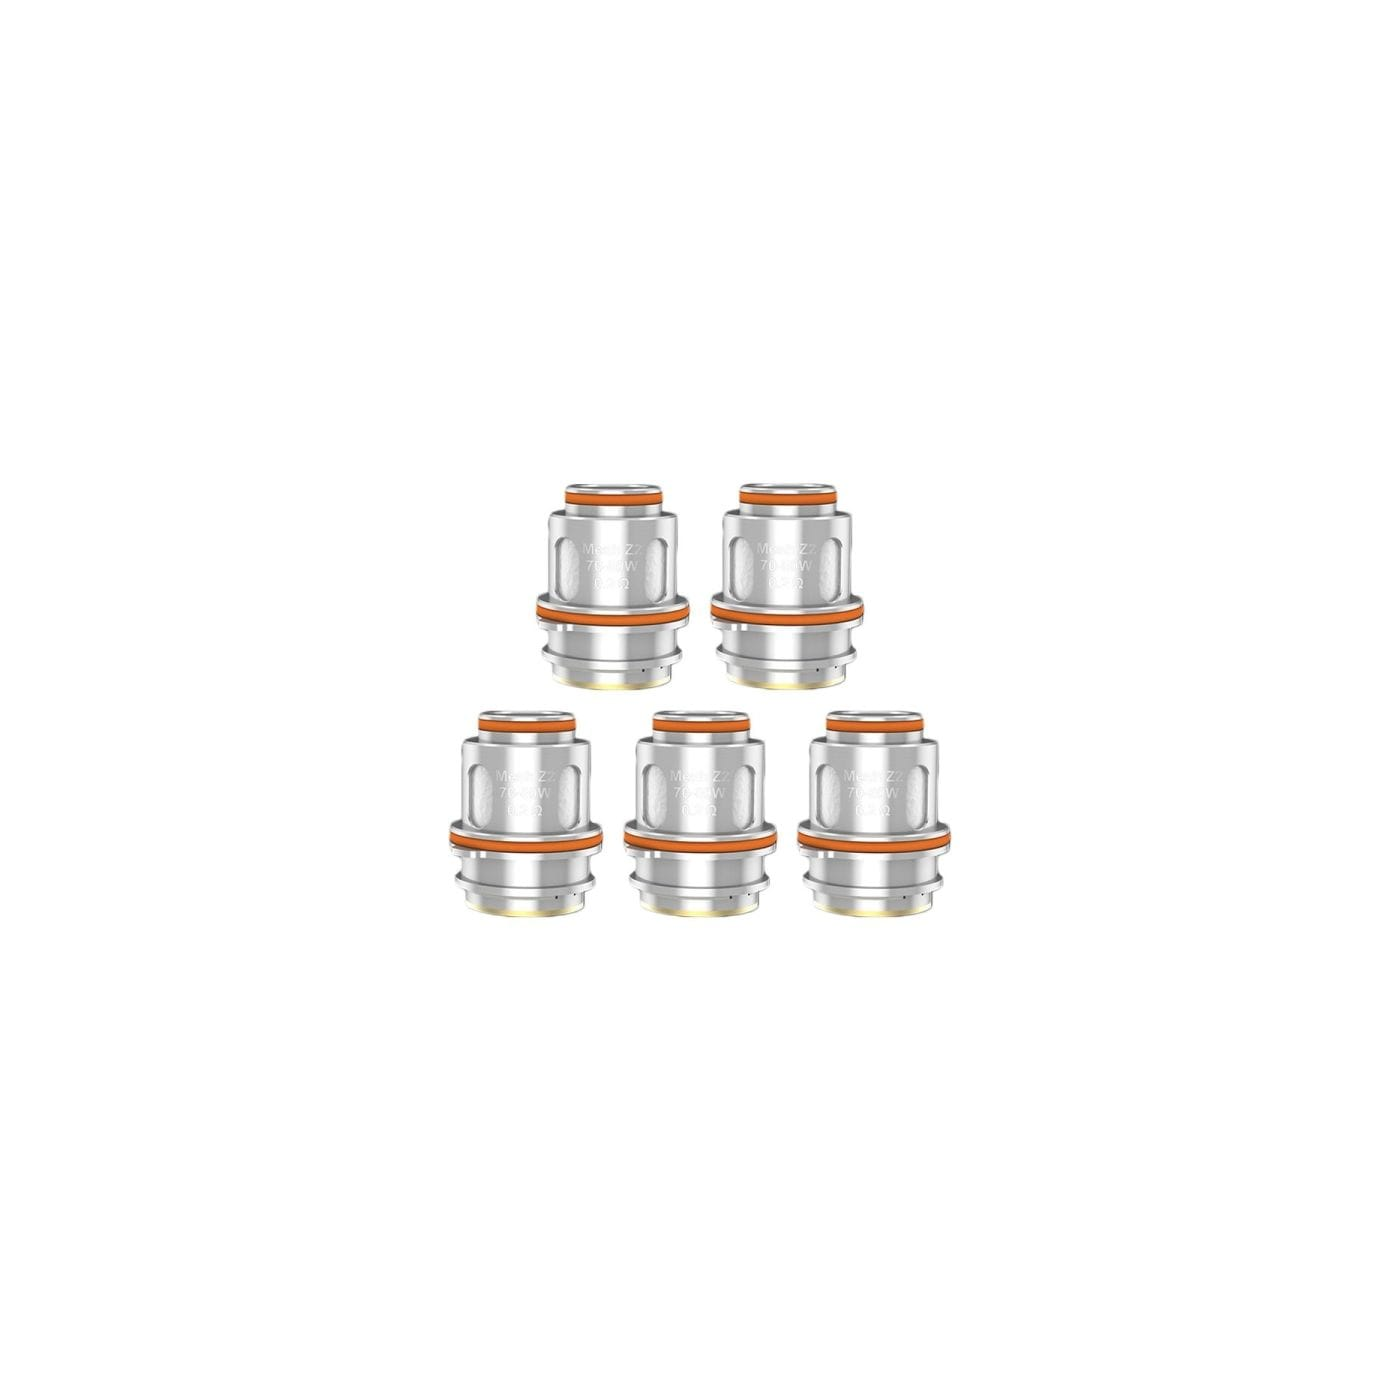 GeekVape Zeus Z2 Replacement Coils - 5 Pack